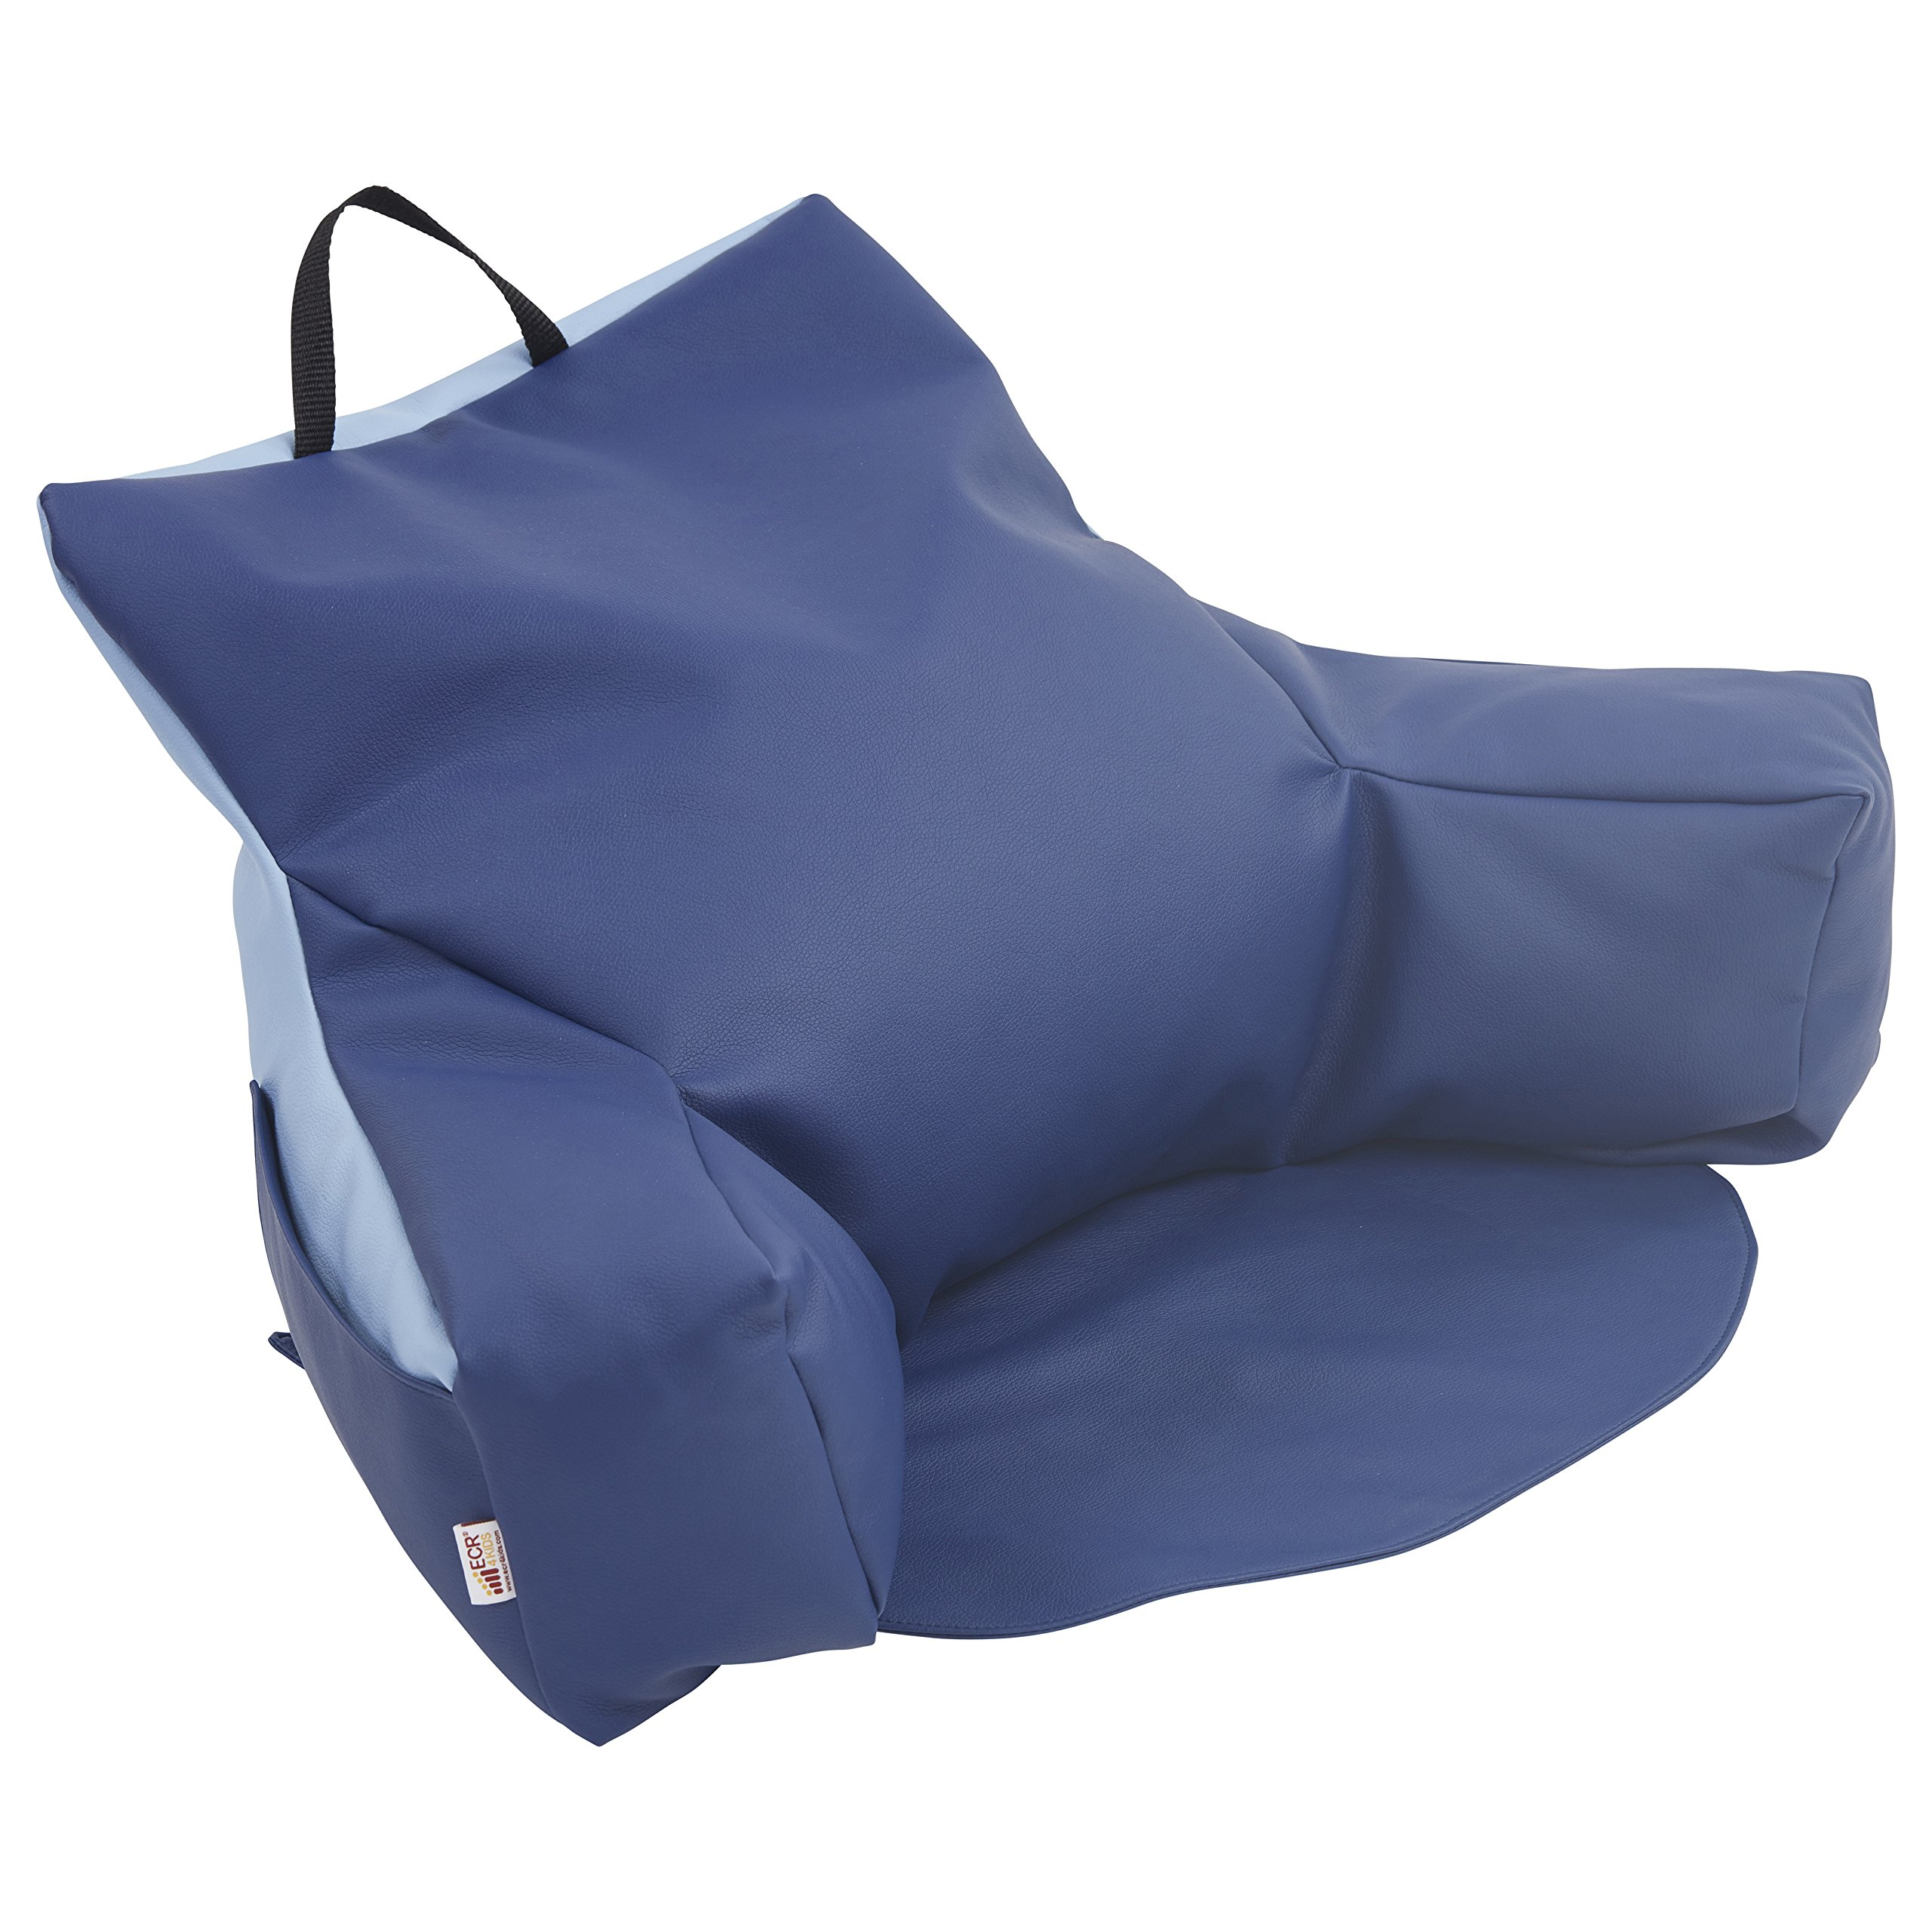 ECR4Kids Relax-N-Read Bean Bag Back Pillow Chair with Storage Pockets, Navy and Powder Blue